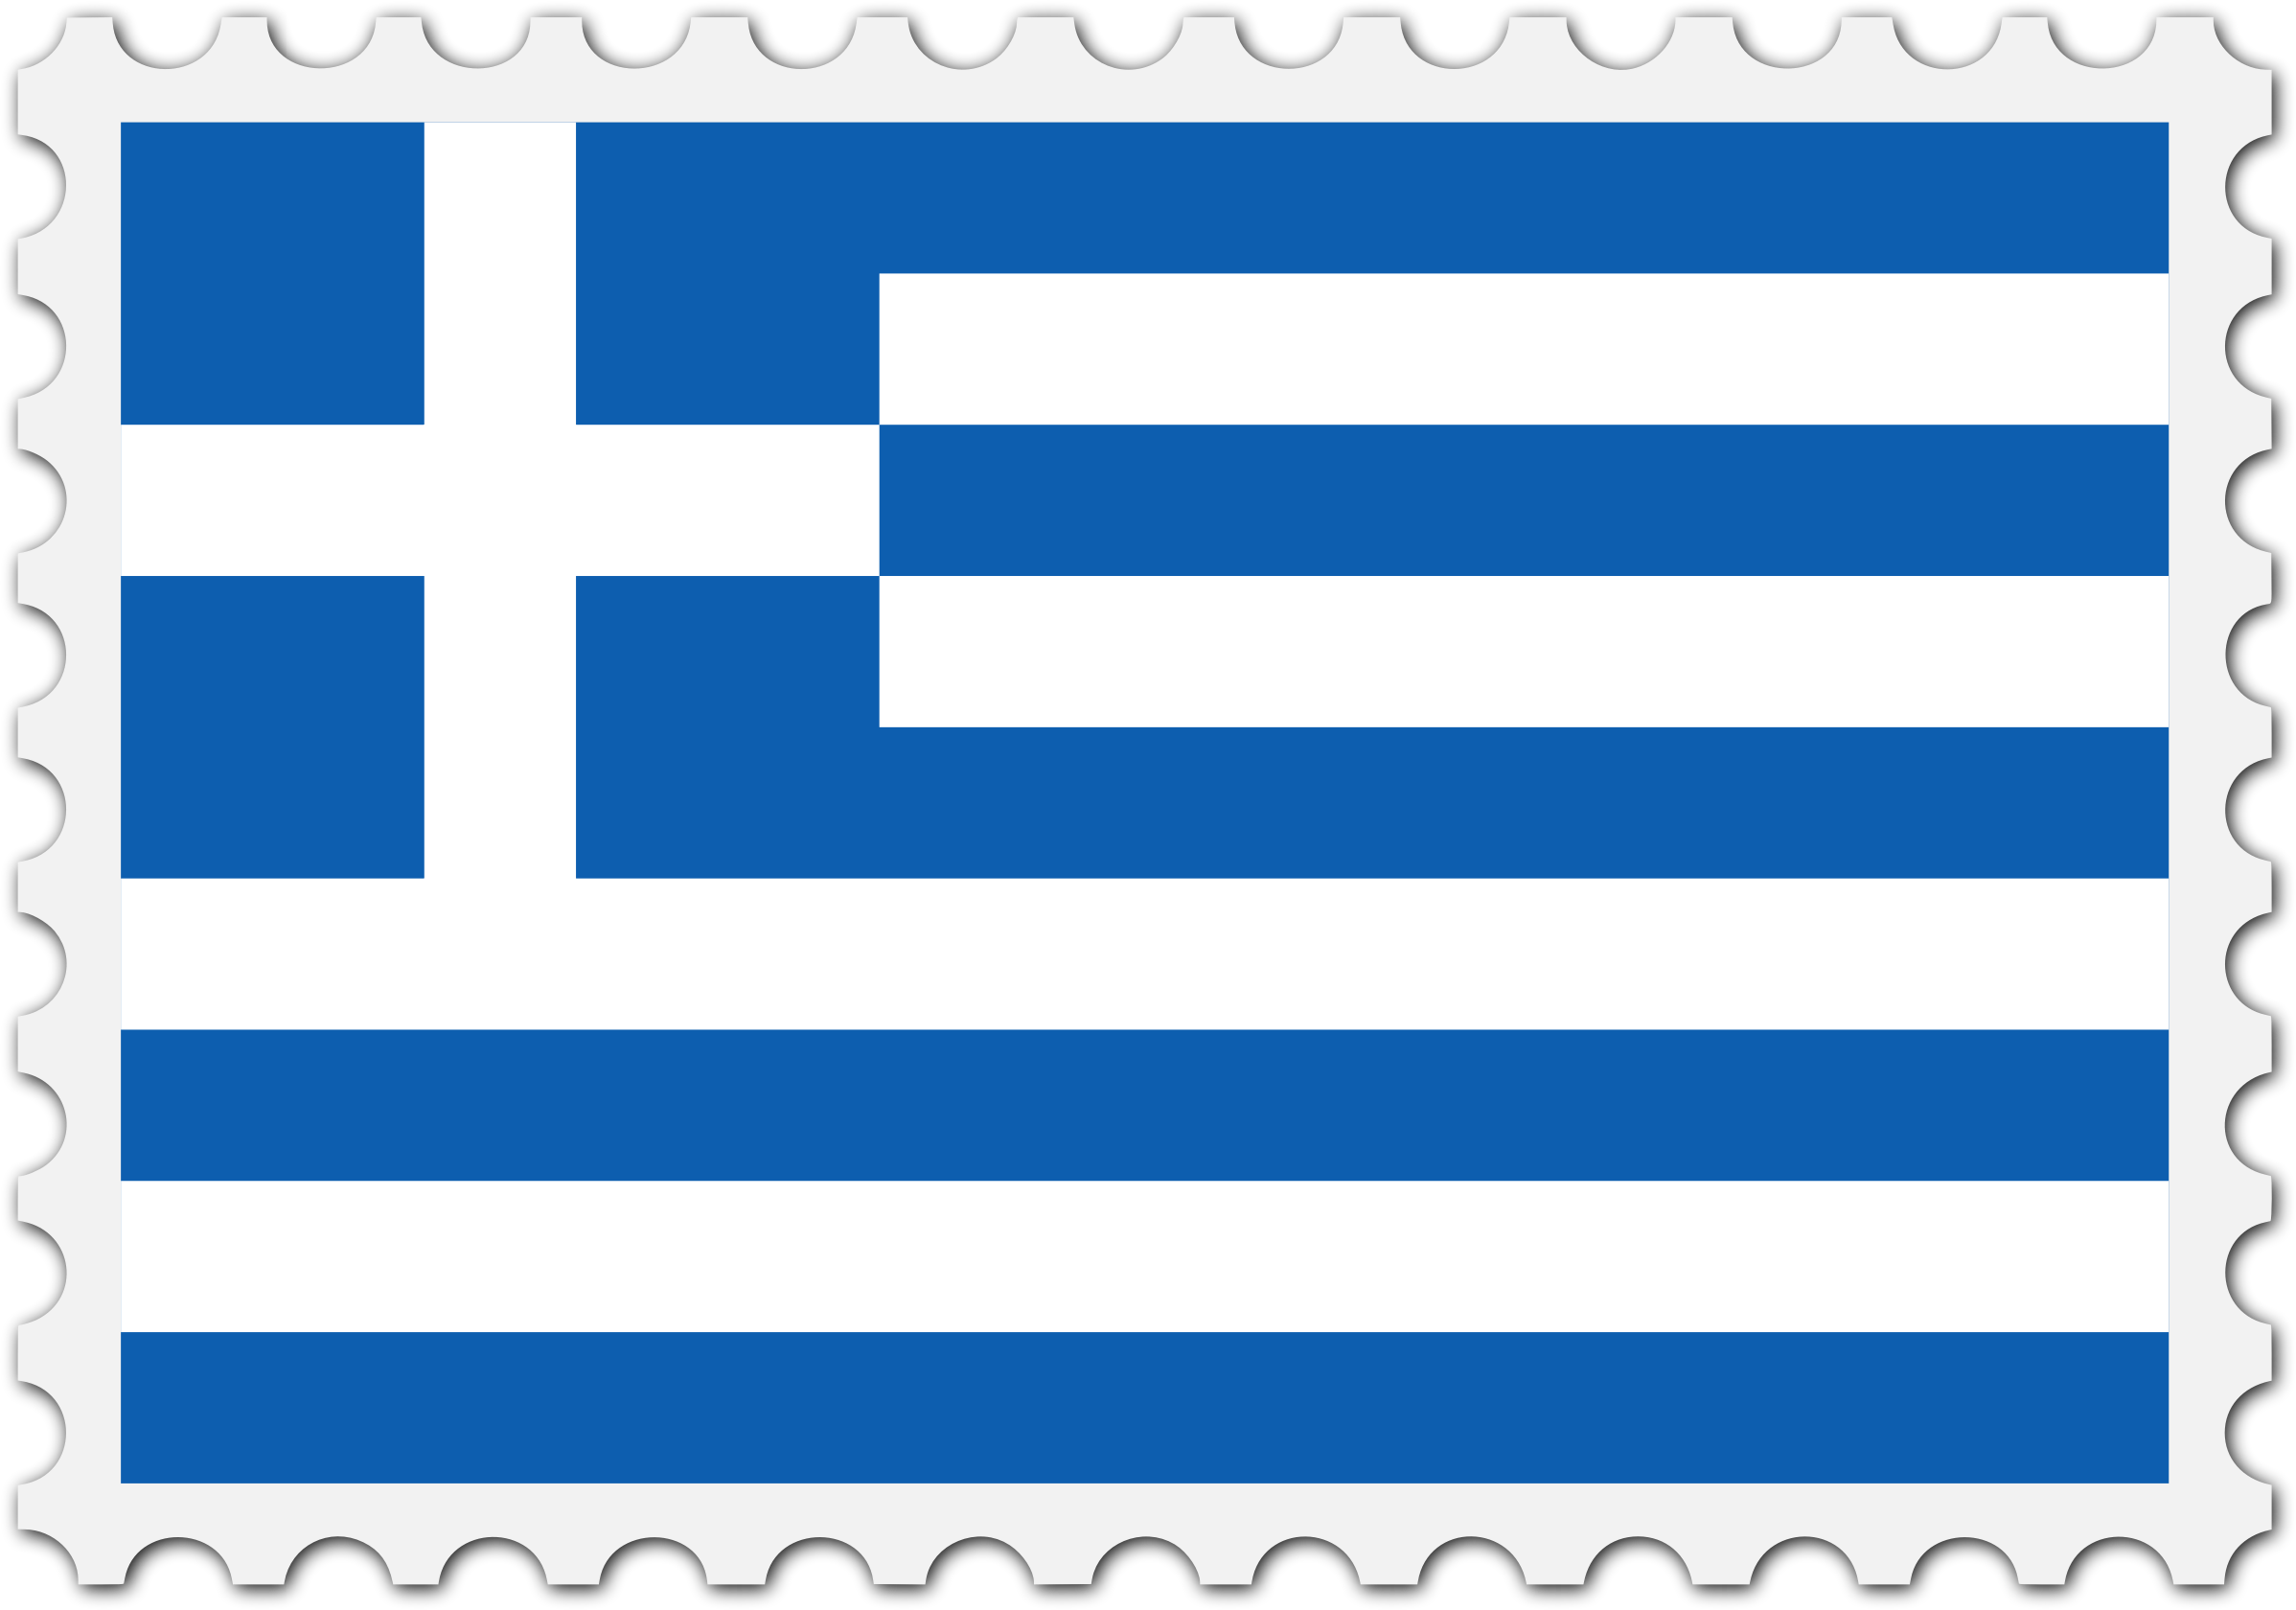 Greece flag stamp by Firkin